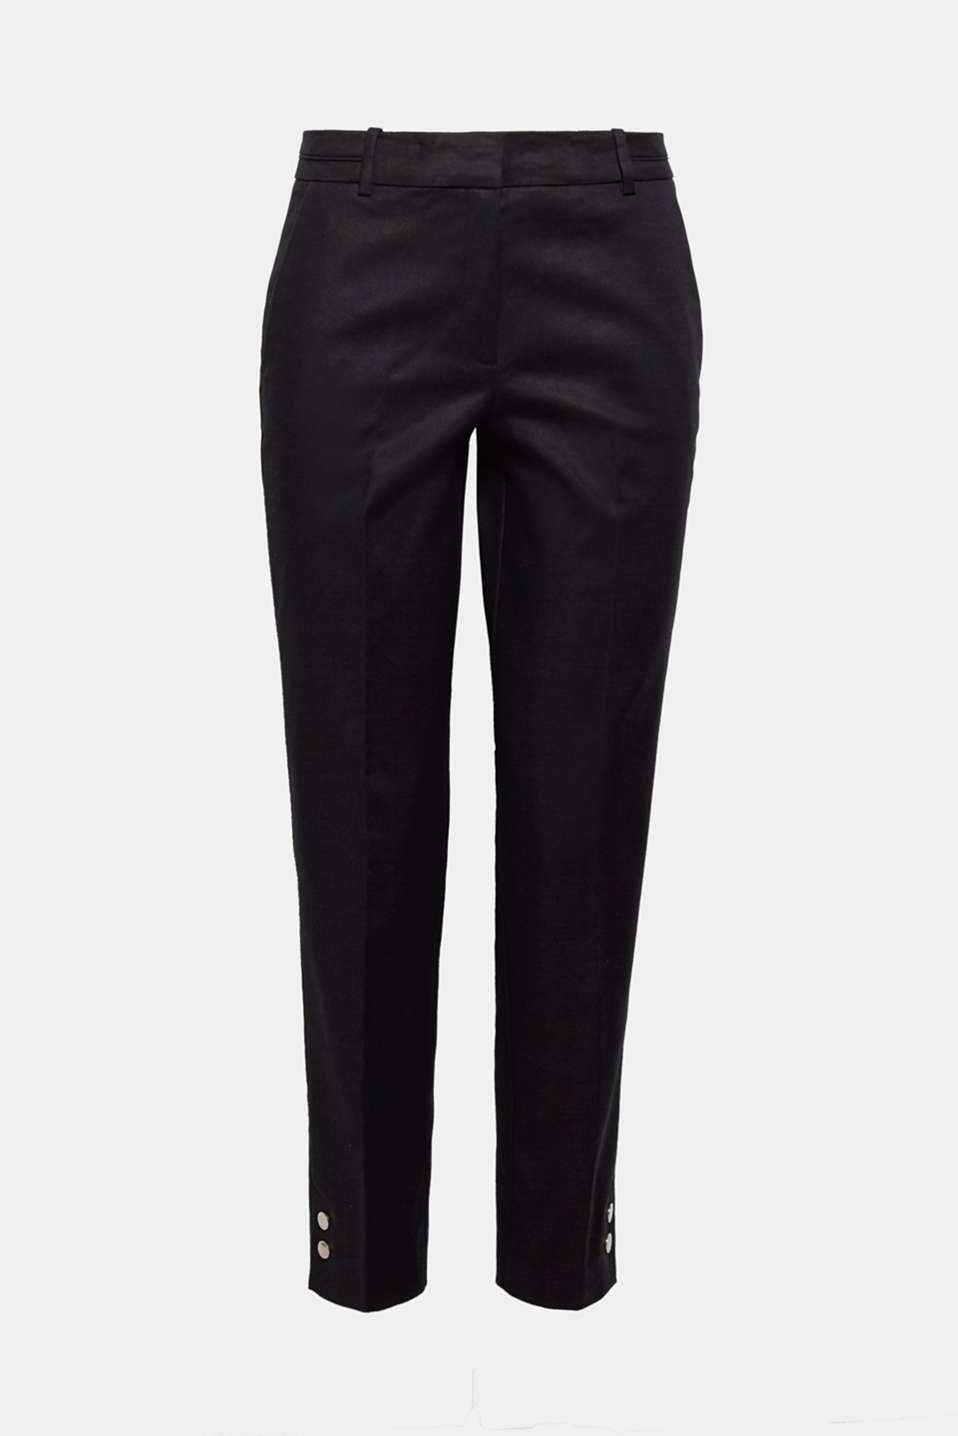 The metal buttons at the sides of the hem accentuate the trendy cropped leg length on these stretch trousers!